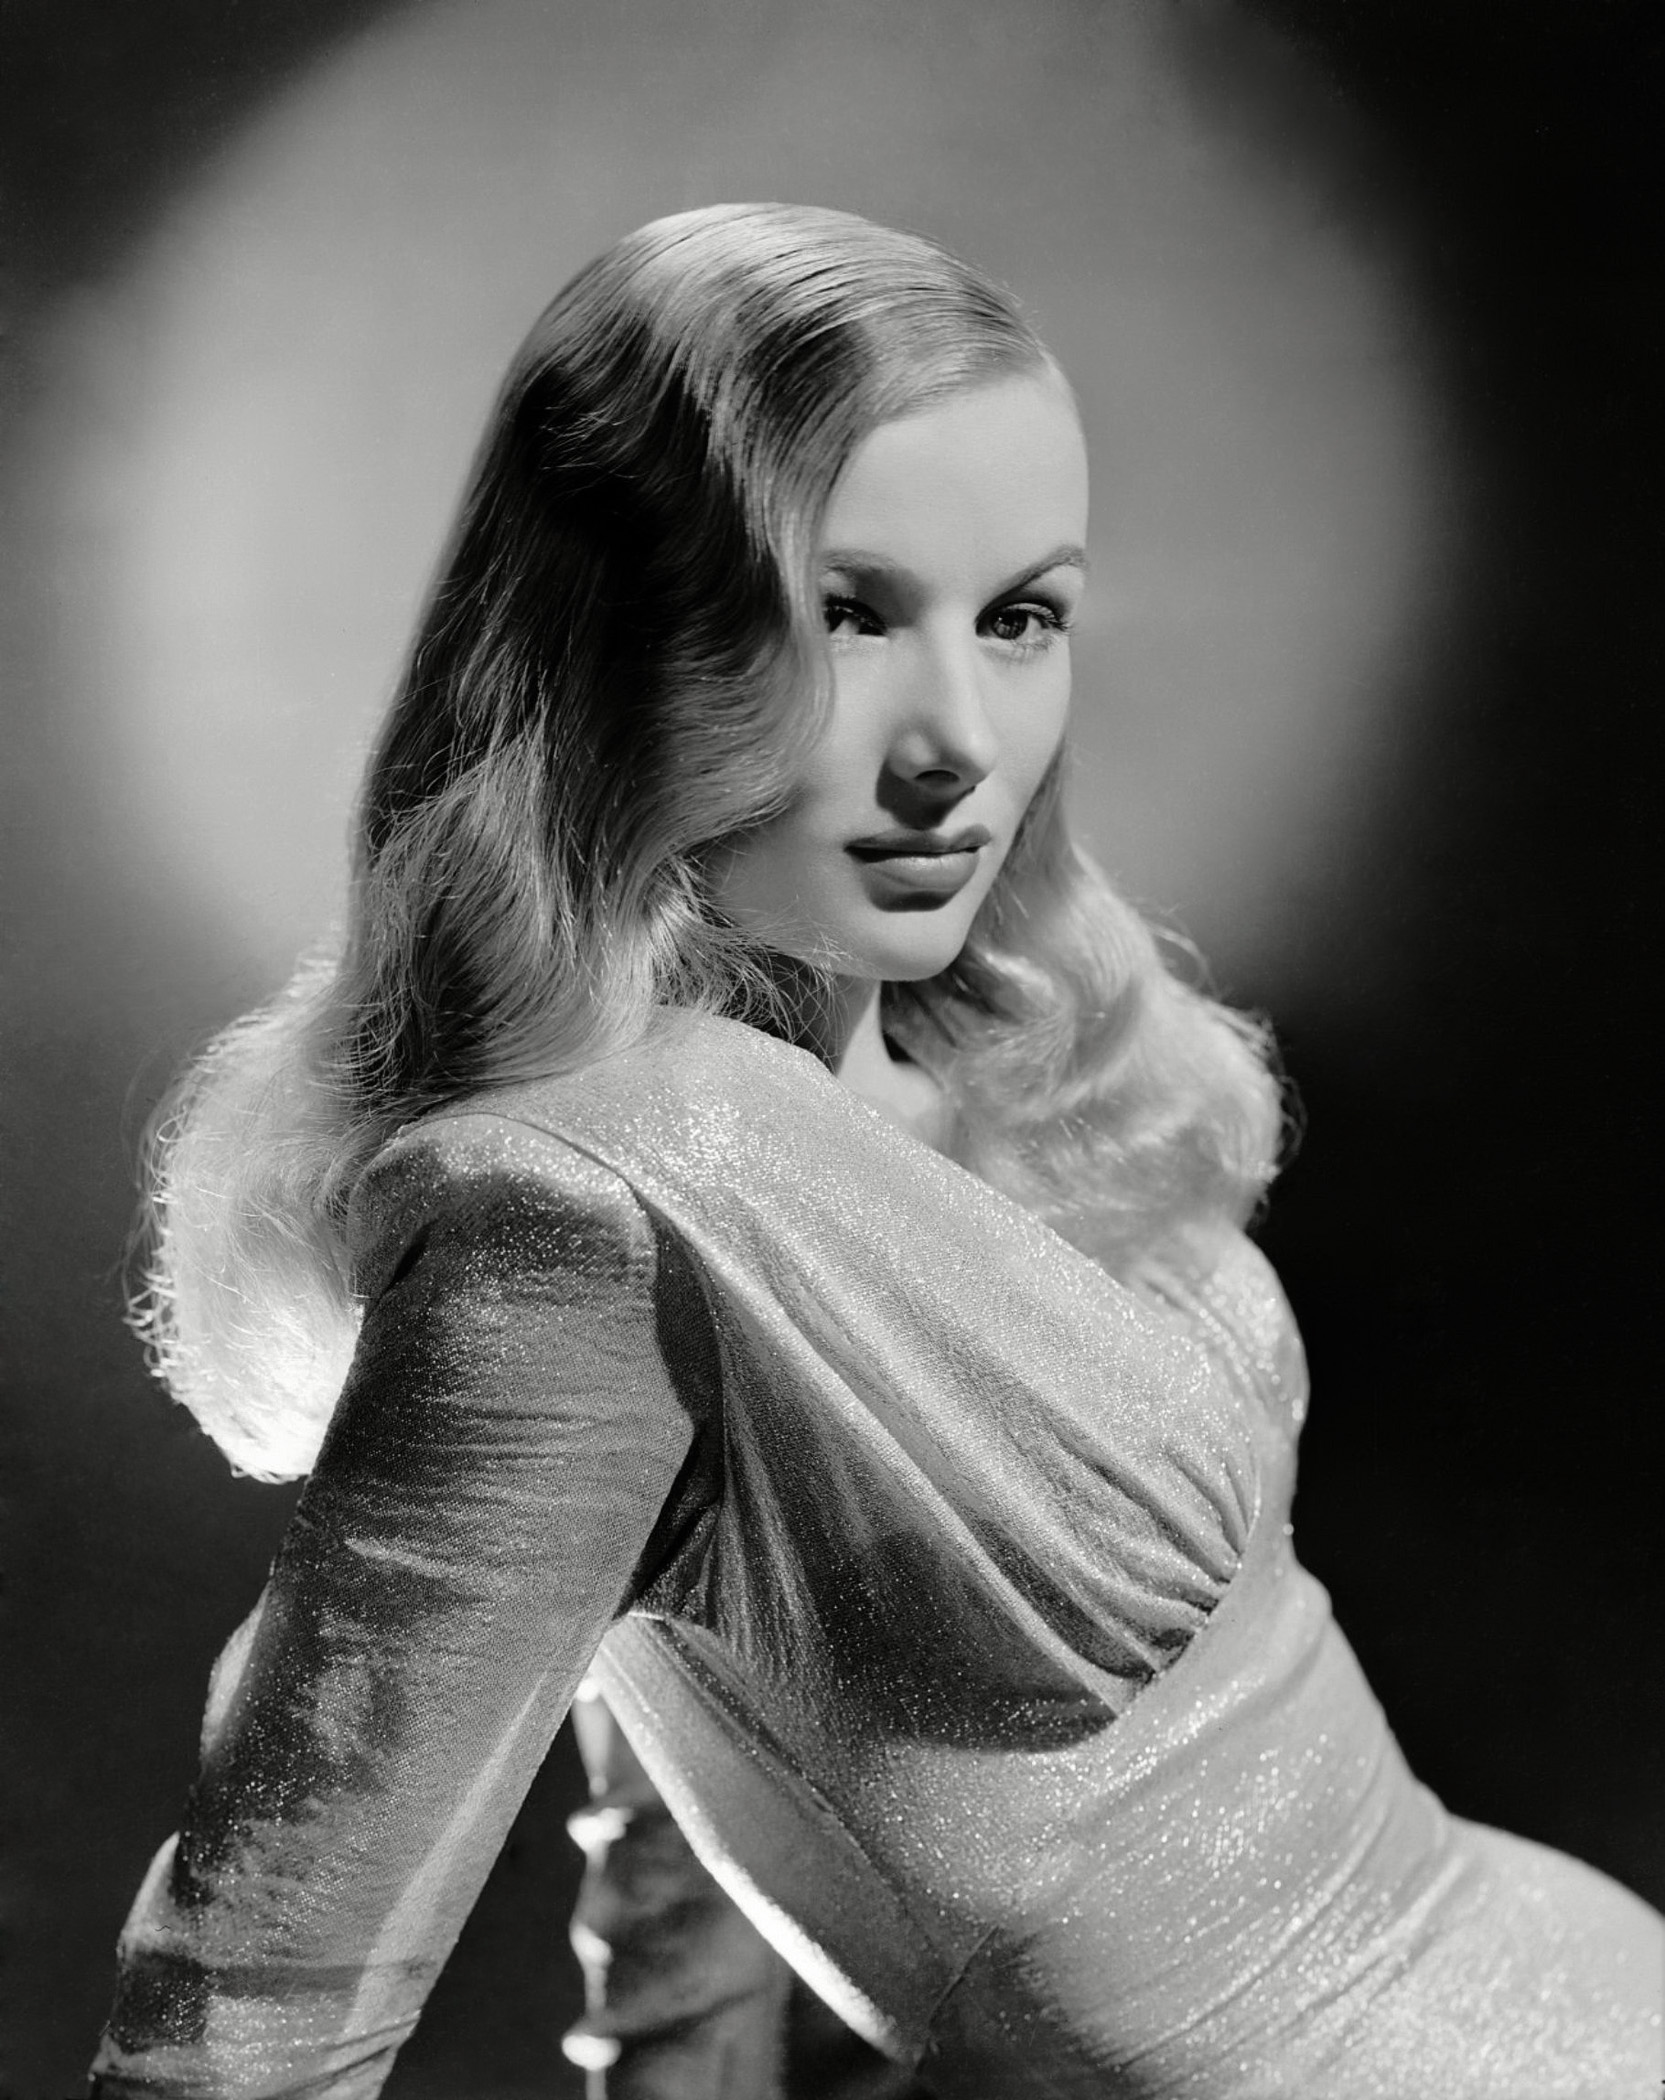 veronica lake and alan laddveronica lake tumblr, veronica lake style, veronica lake height, veronica lake old, veronica lake wings, veronica lake daughter, veronica lake interview, veronica lake style dress, veronica lake jessica rabbit, veronica lake movie, veronica lake and alan ladd, veronica lake photos, veronica lake hairstyle, veronica lake 1970, veronica lake wallpaper, veronica lake pictures, veronica lake hair tutorial, veronica lake height and weight, veronica lake airplane, veronica lake last photo